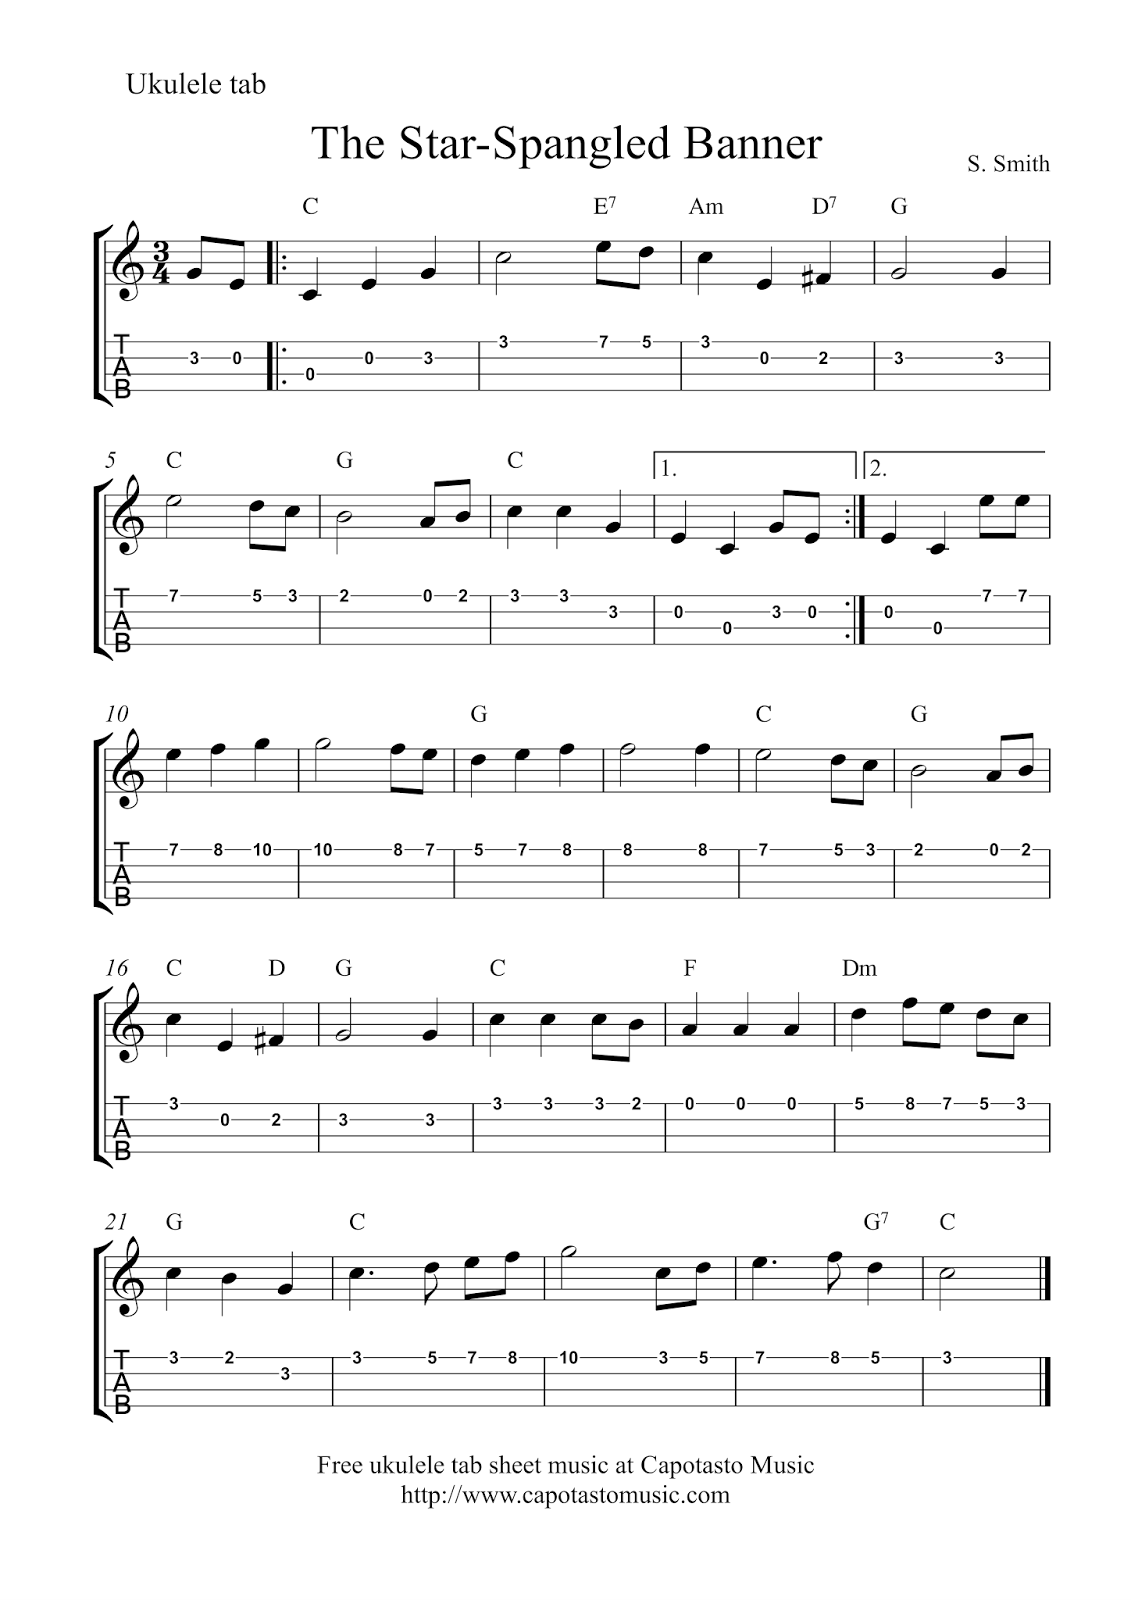 The Star Spangled Banner Free Ukulele Tablature Sheet Music With Images Sheet Music Printable Sheet Music Free Printable Sheet Music